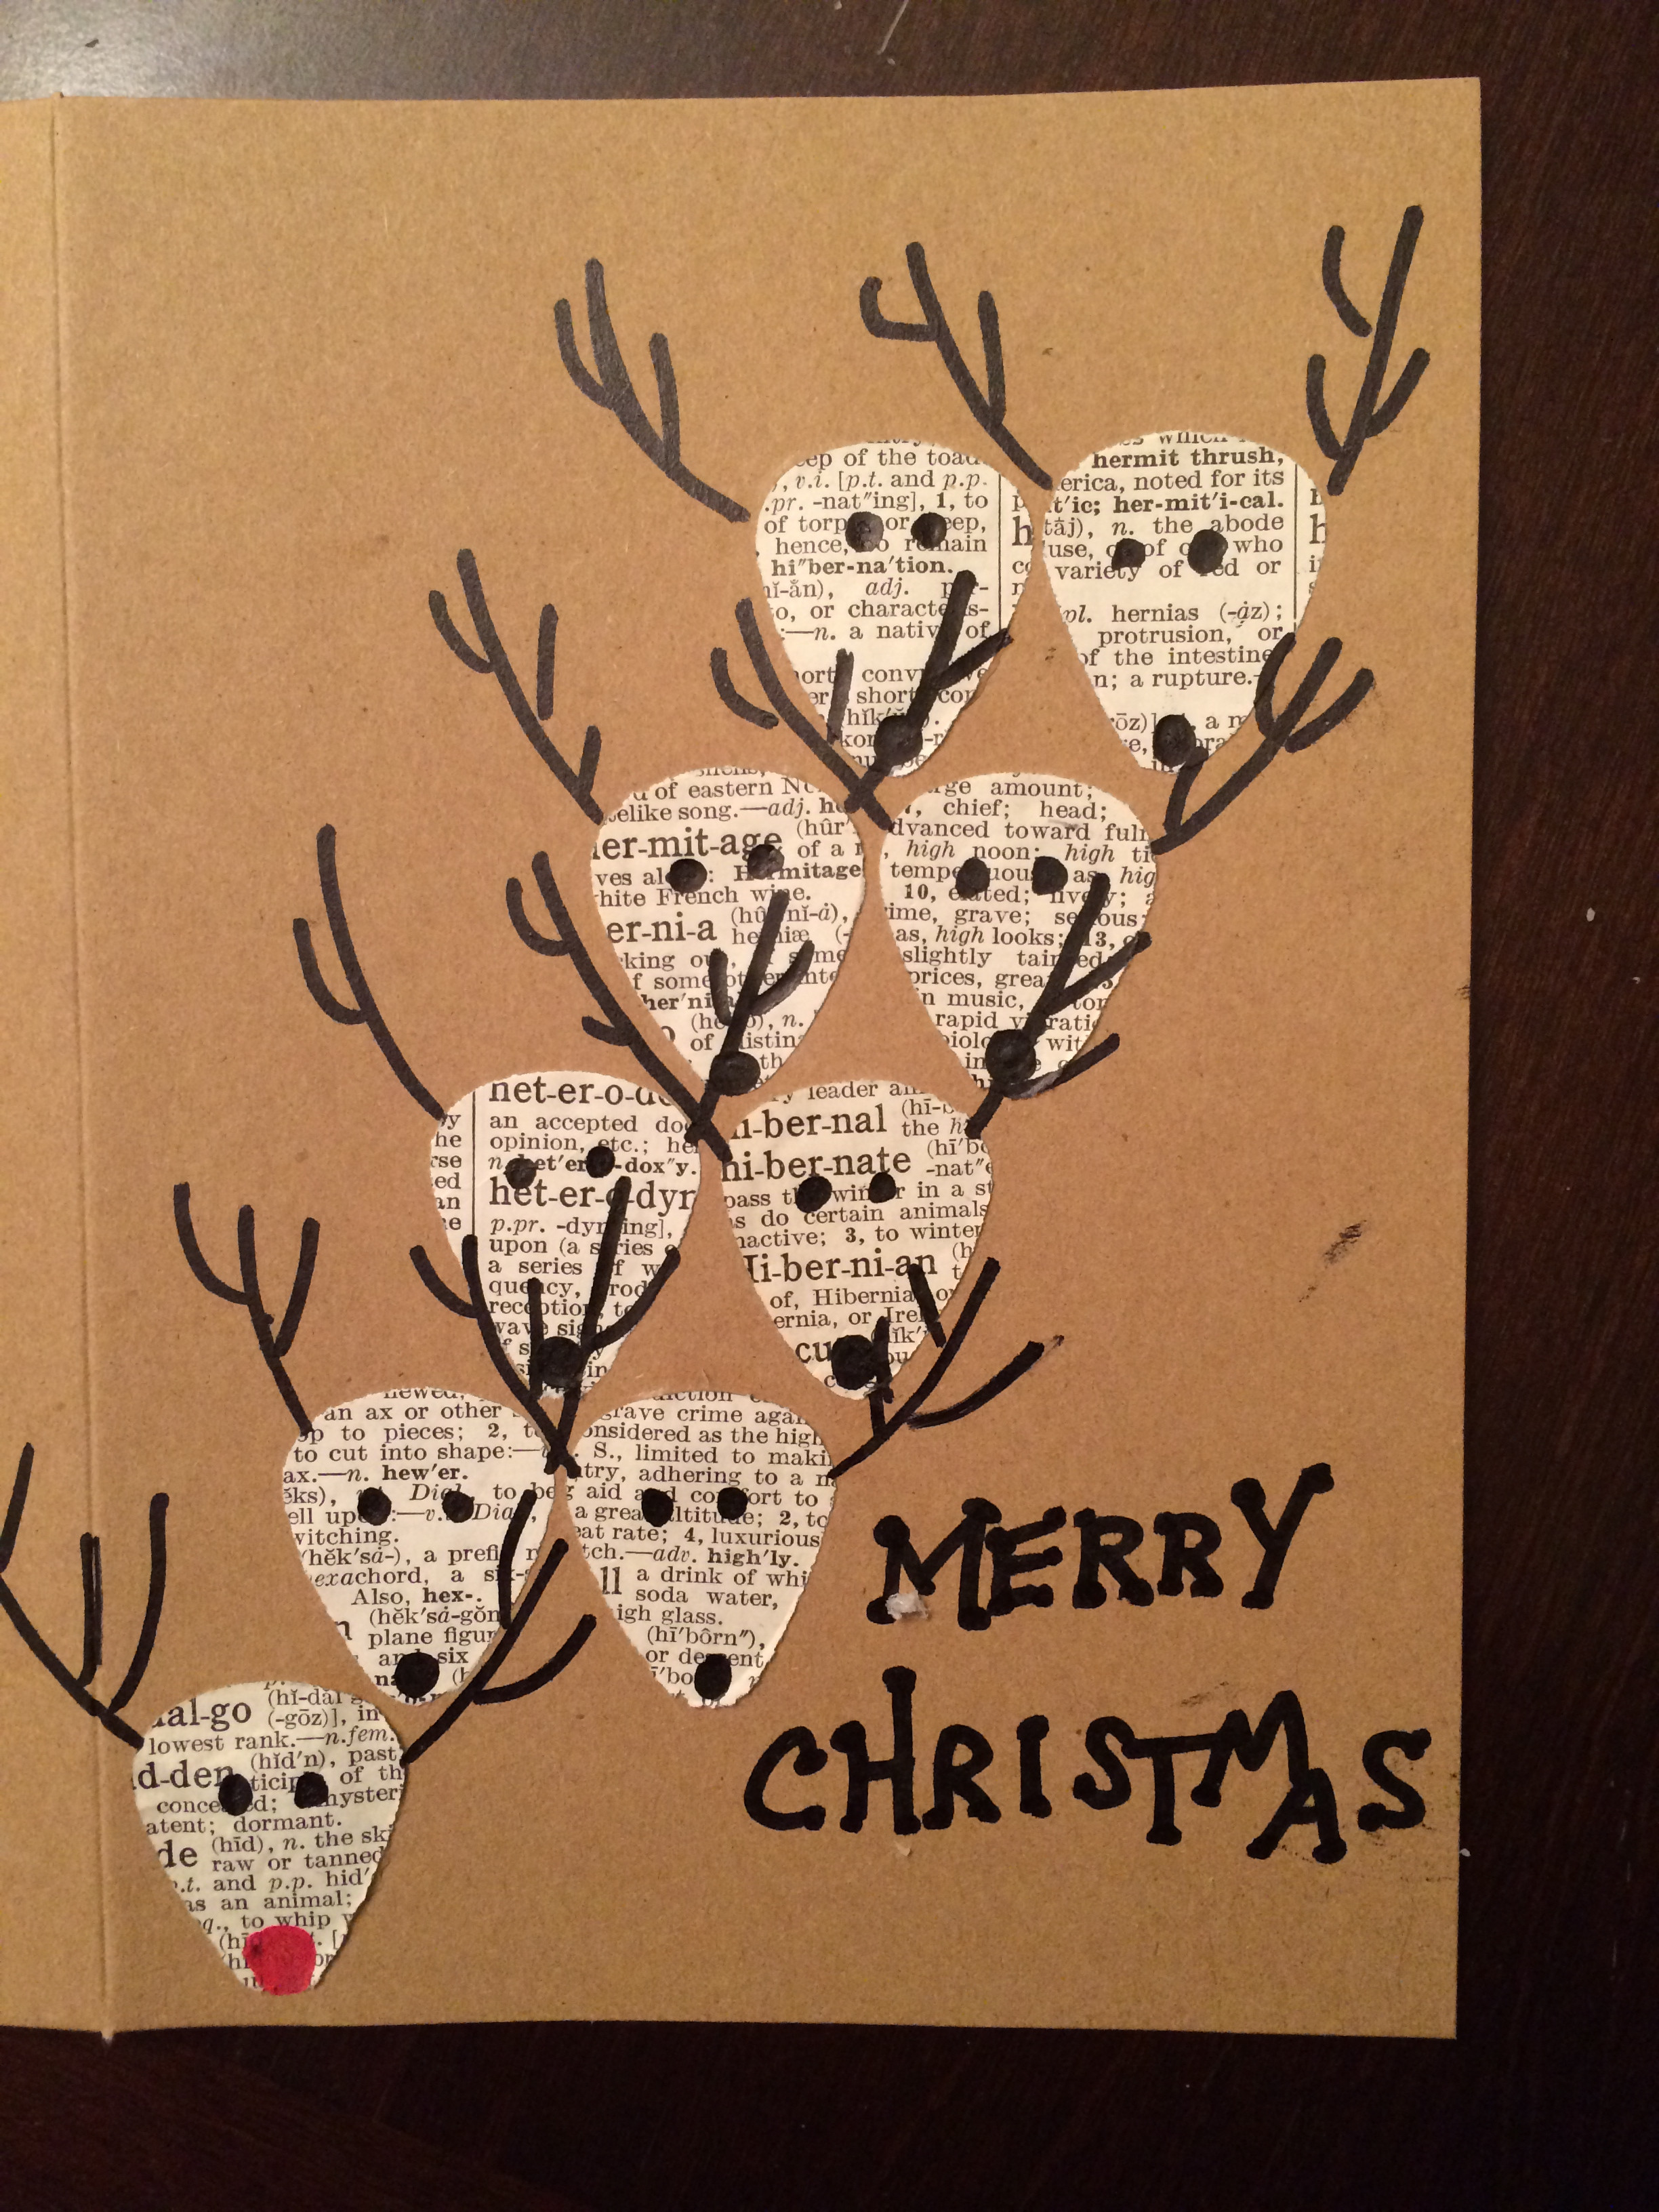 Best ideas about DIY Christmas Cards . Save or Pin DIY Christmas Cards Now.